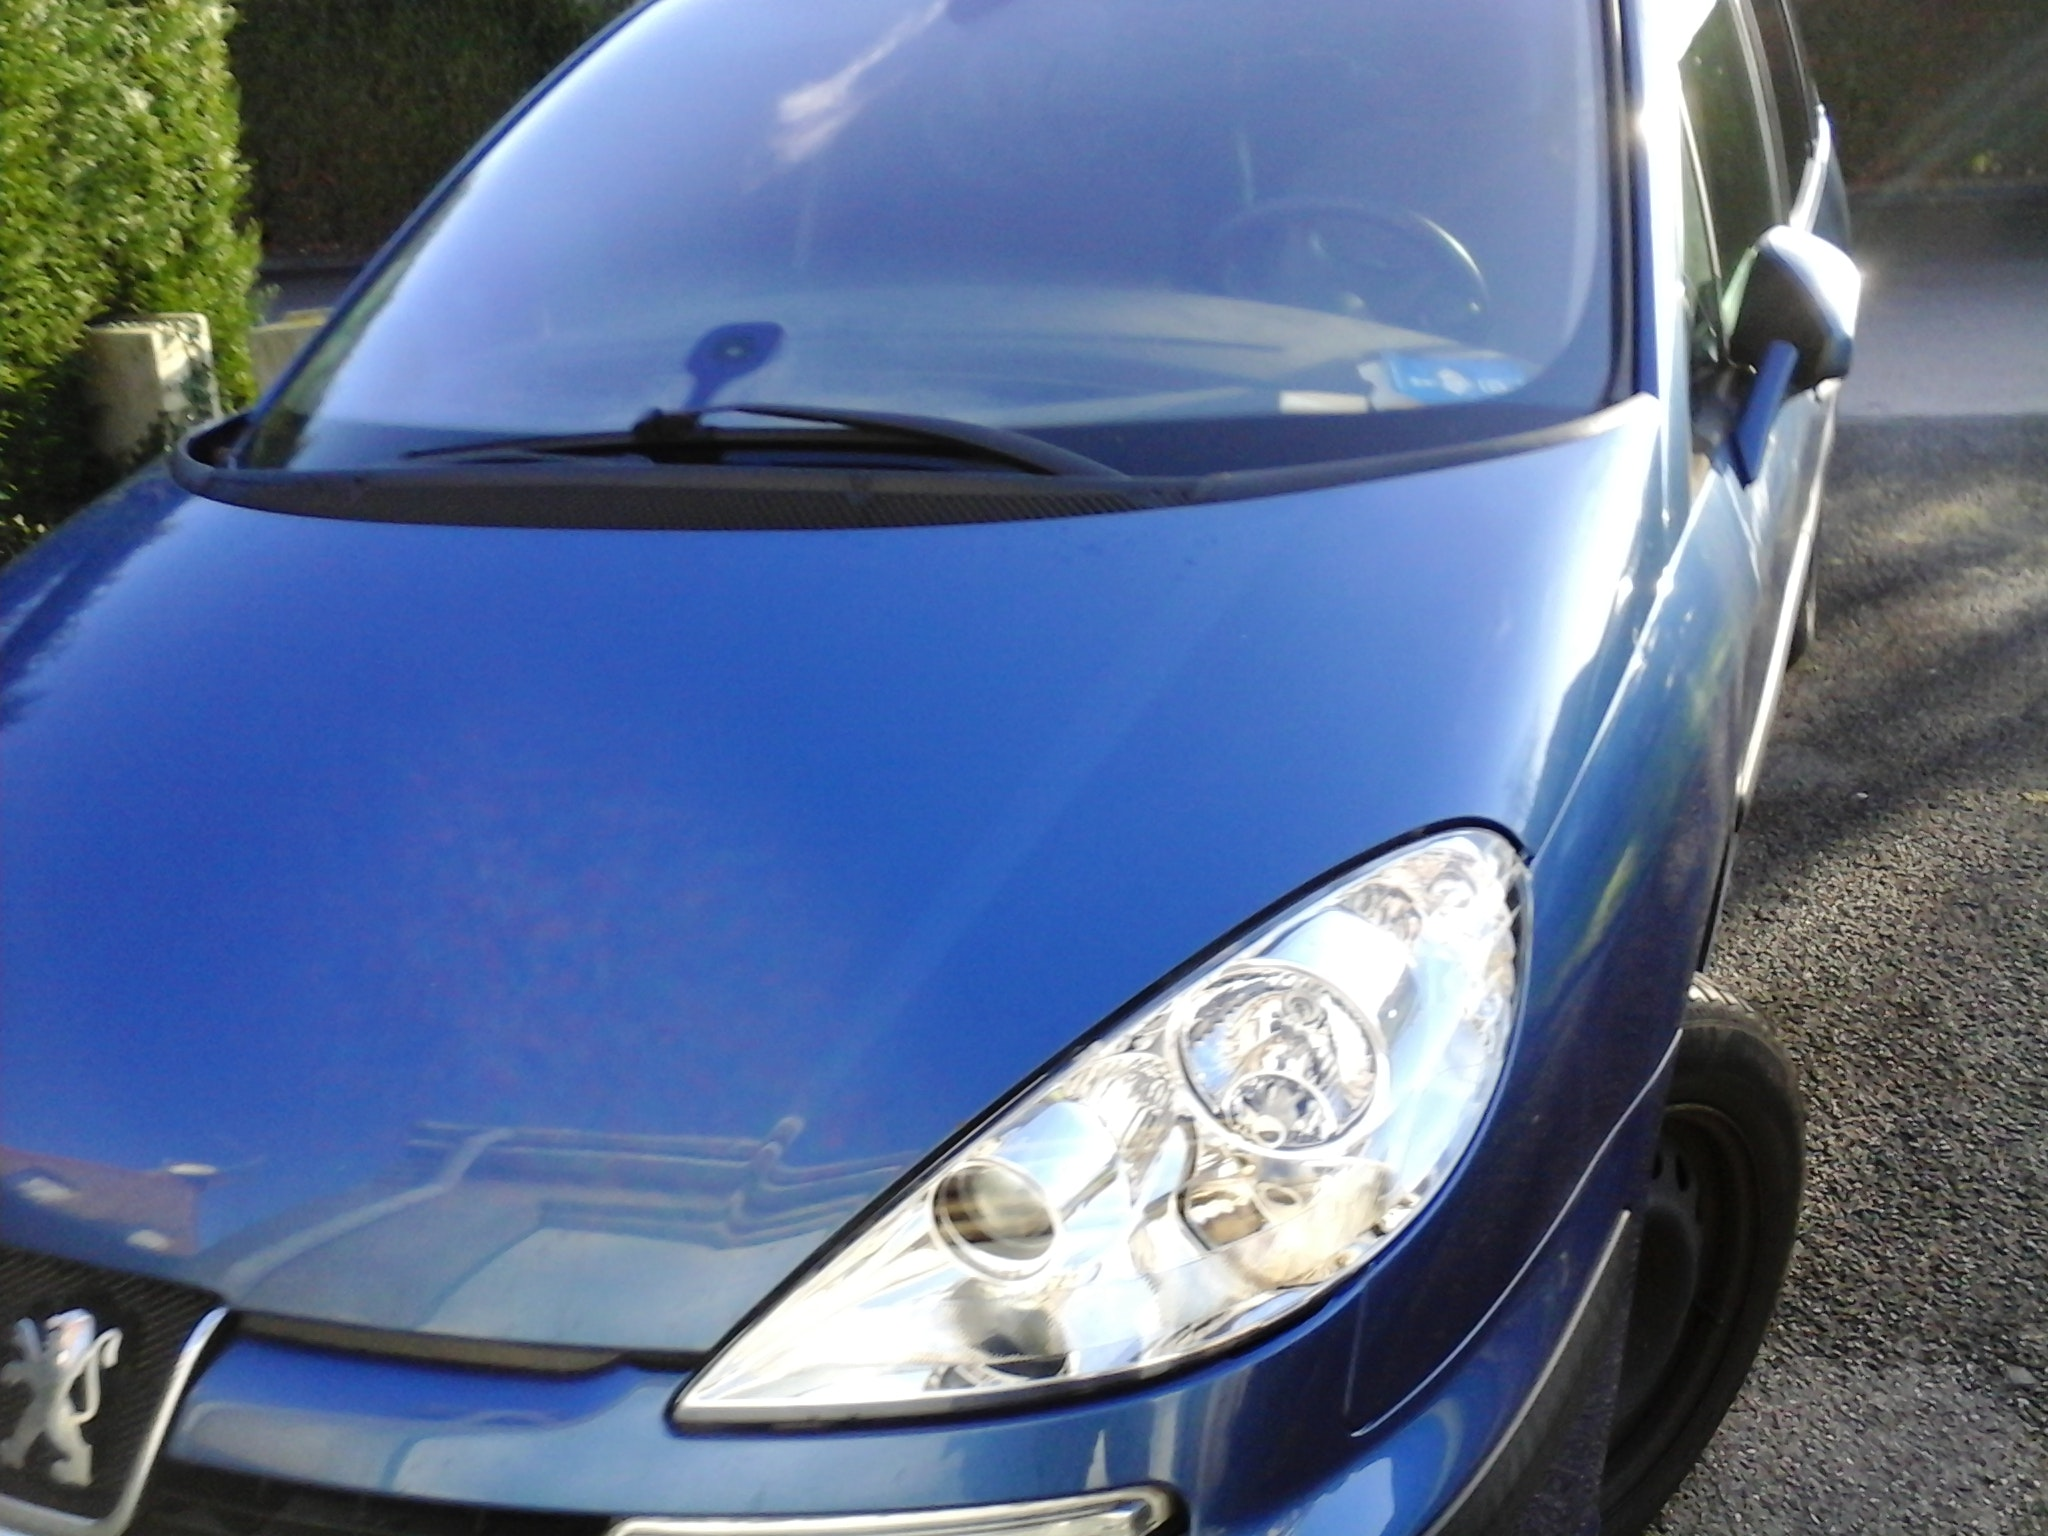 peugeot 807 2,2 hdi, 2006, Diesel, 7 places